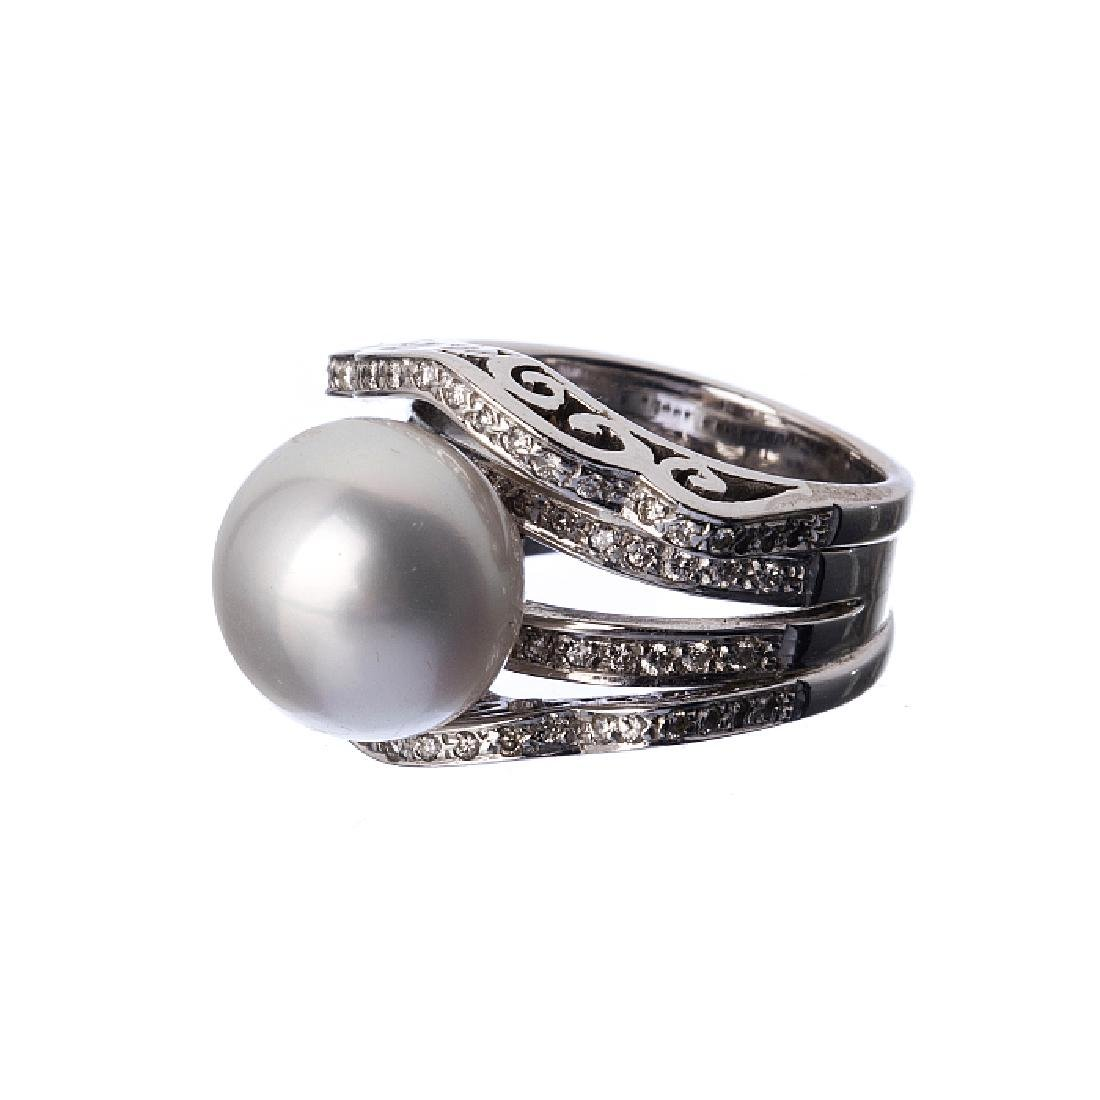 19,2k gold ring with diamonds and cultured pearl